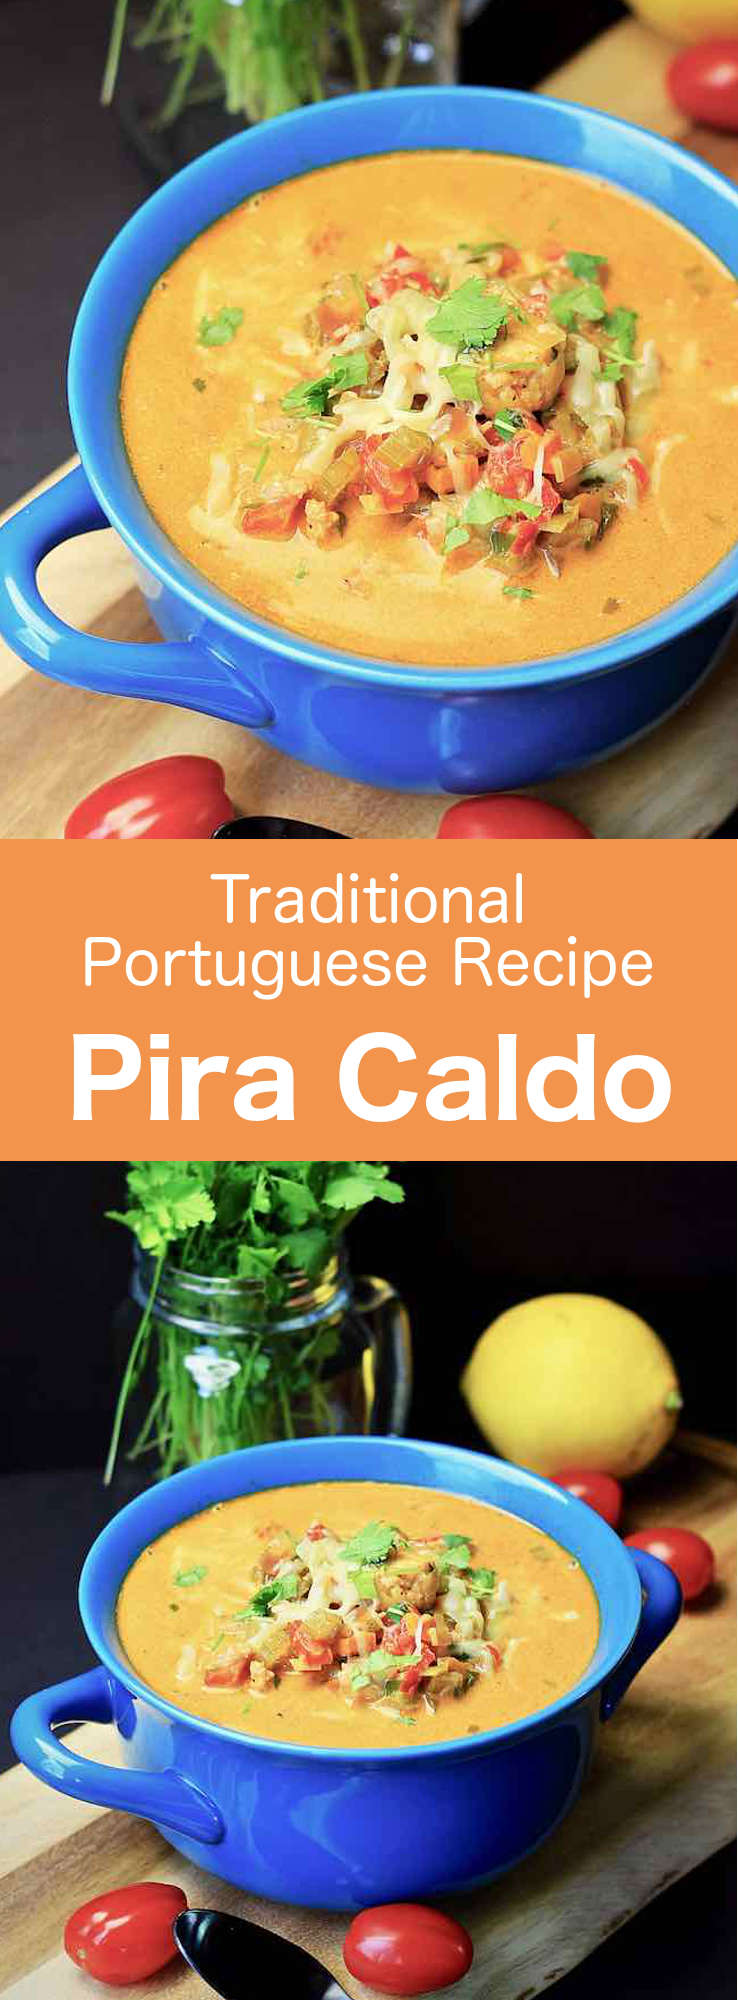 Pira caldo is a delicious traditional fish soup from Paraguay. It is prepared with freshwater catfish, as well as vegetables and Paraguay cheese, a typical soft cheese made from curd. #Paraguay #ParaguayanCuisine #ParaguayanRecipe #LatinAmericanCuisine #LatinAmericanRecipe #SouthAmericanCuisine #SouthAmericanRecipe #Guarani #GuaraniCuisine #WorldFlavors #196flavors